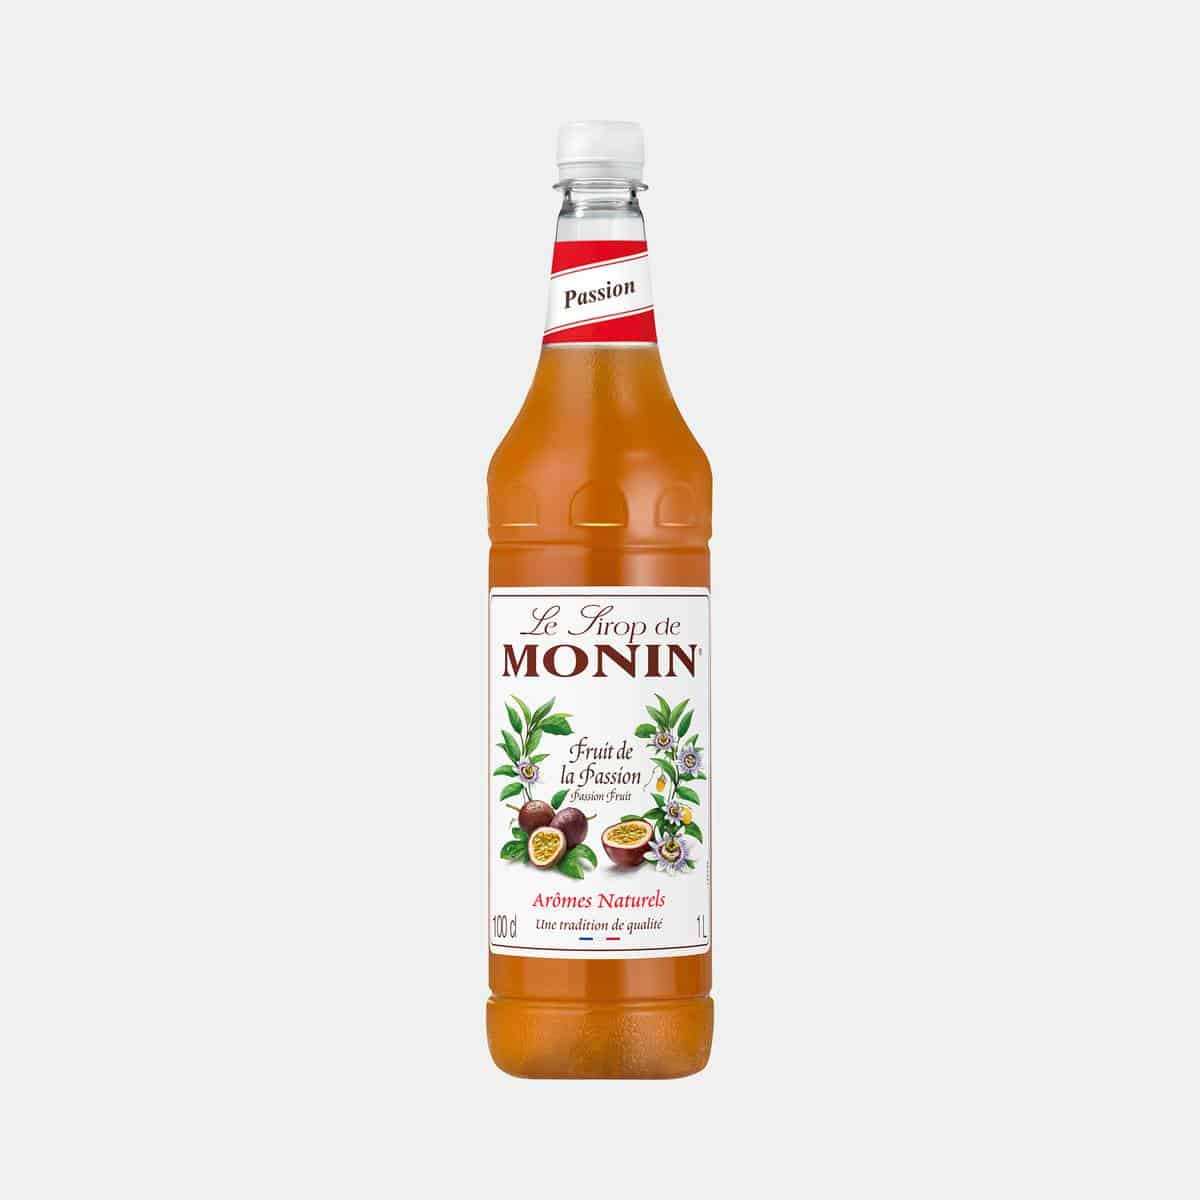 Monin Passion Fruit Syrup 1 Liter PET